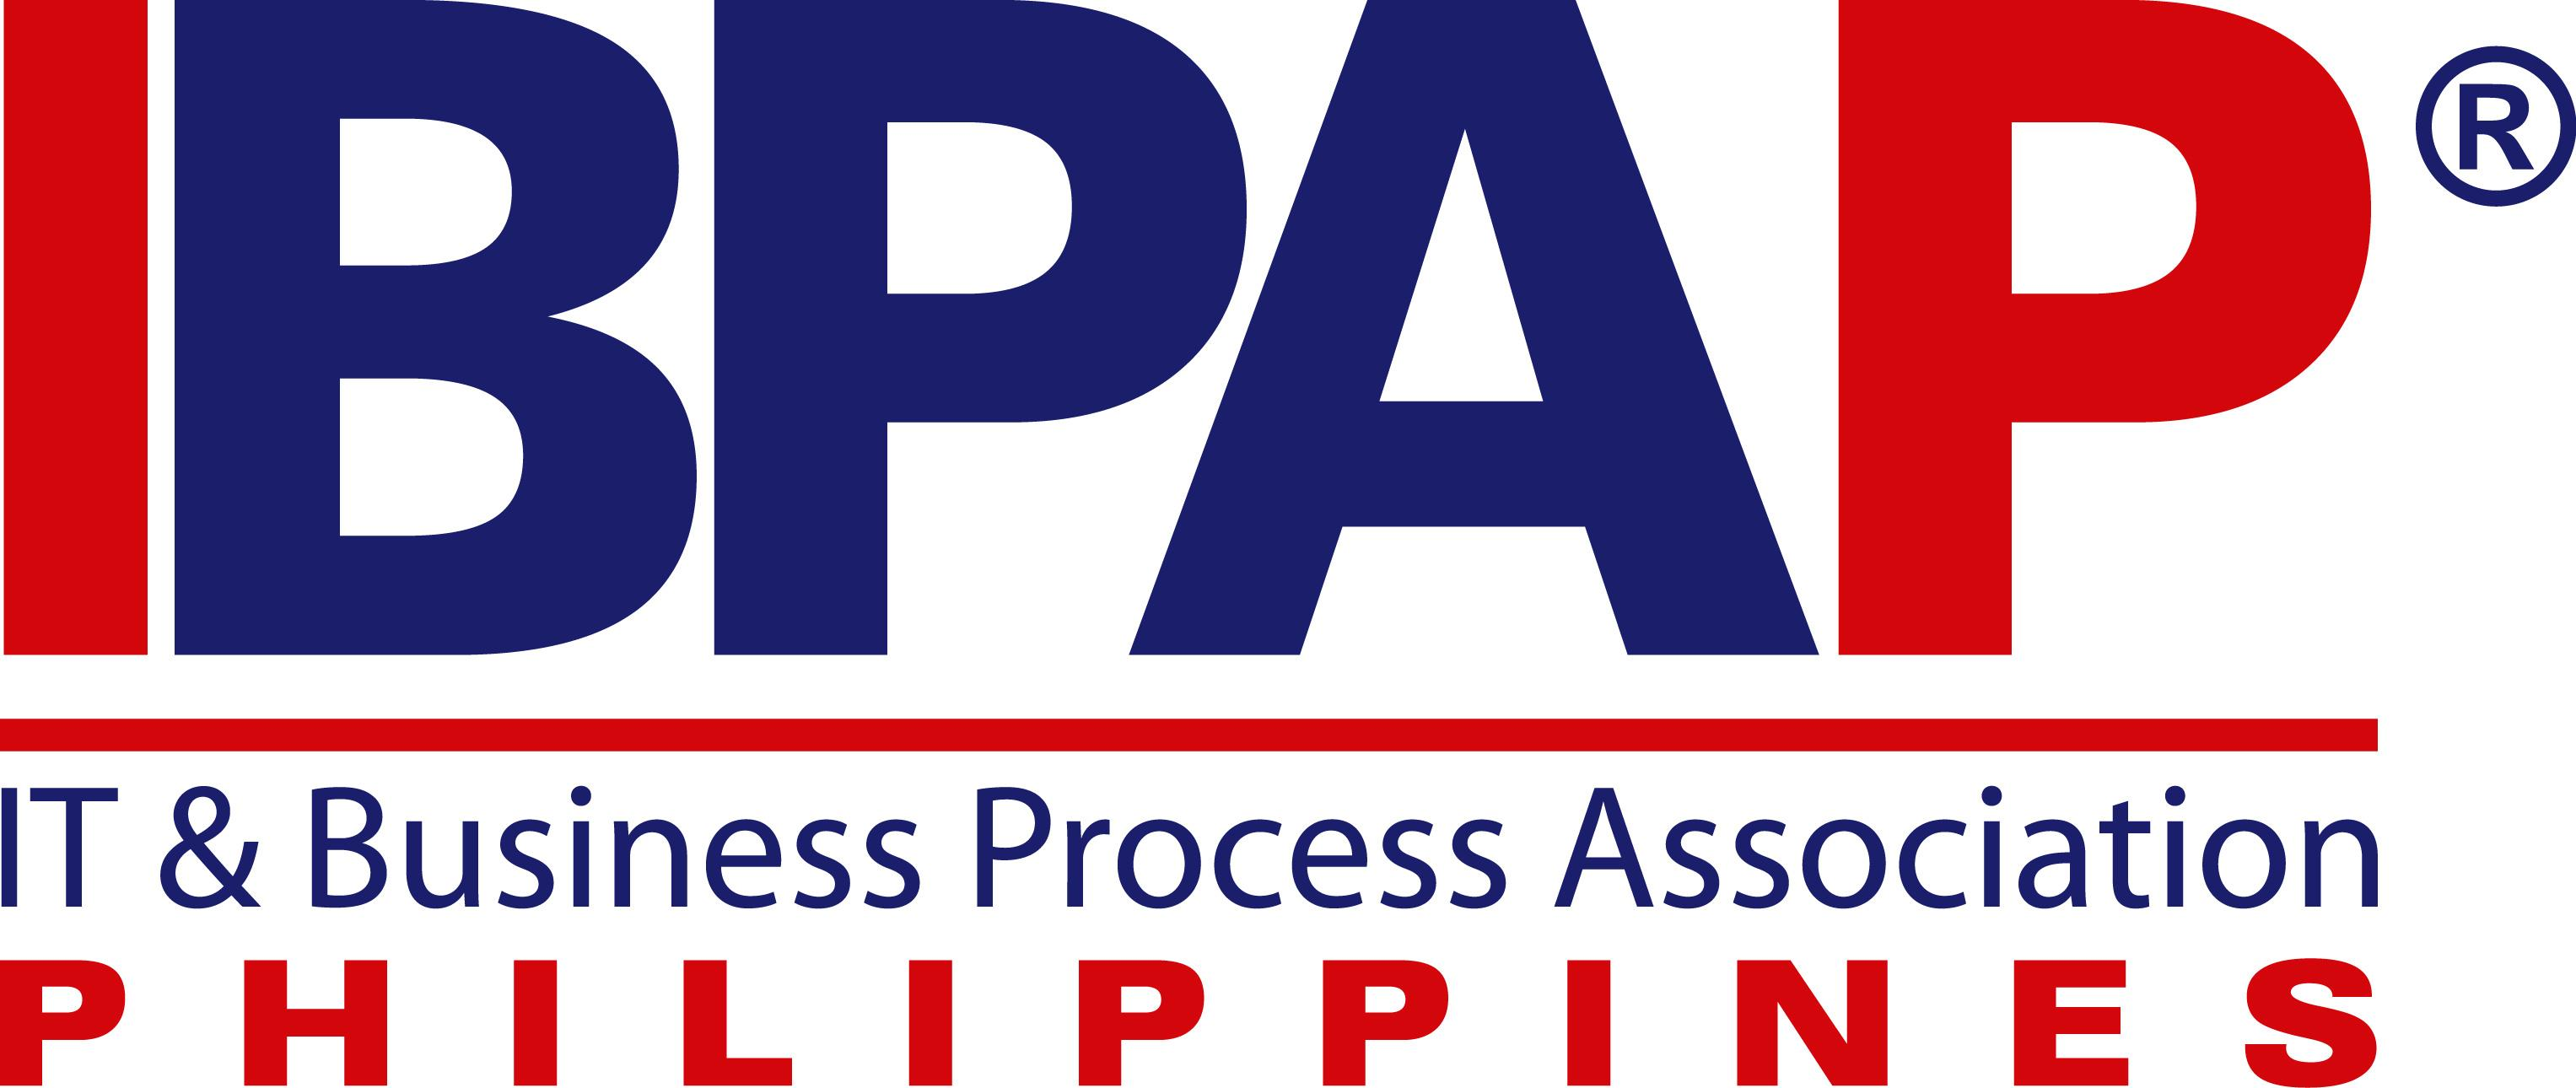 IT & Business Process Association of the Philippines - CHED IRSE Grants